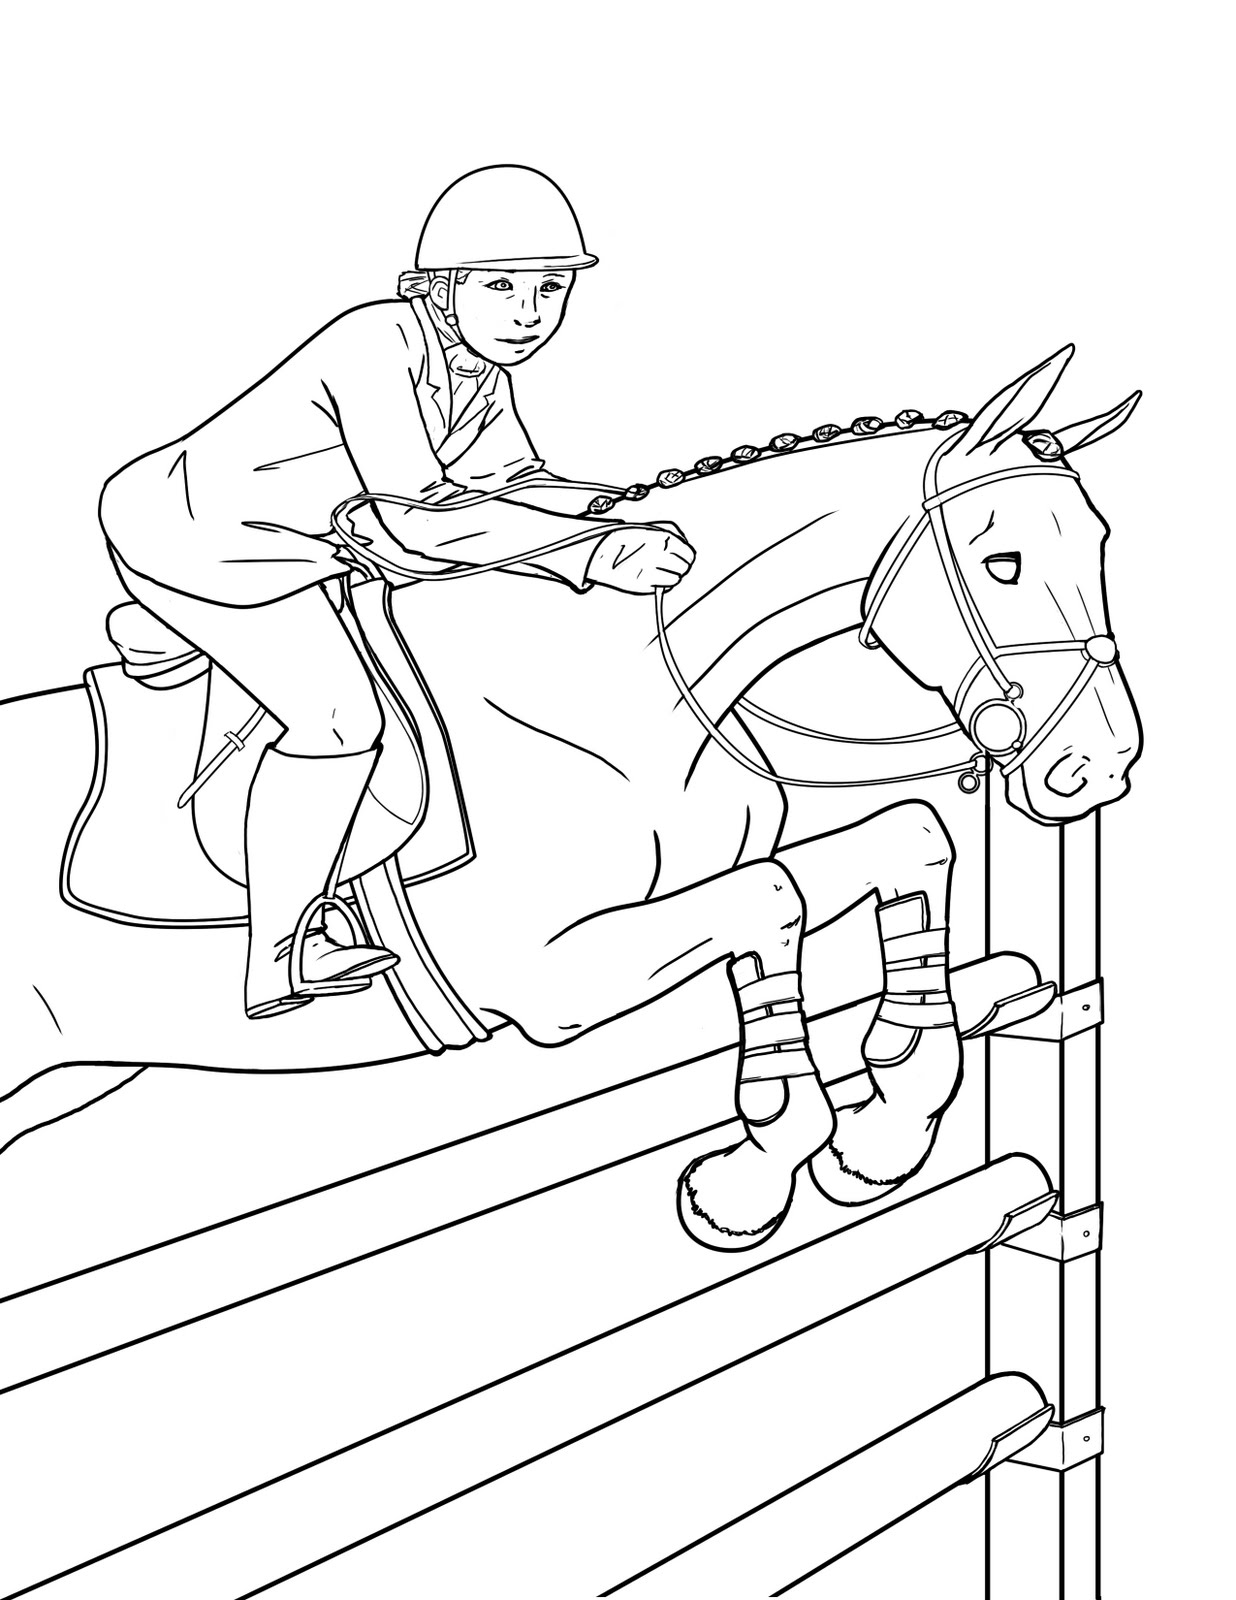 horses jumping coloring pages - photo#12